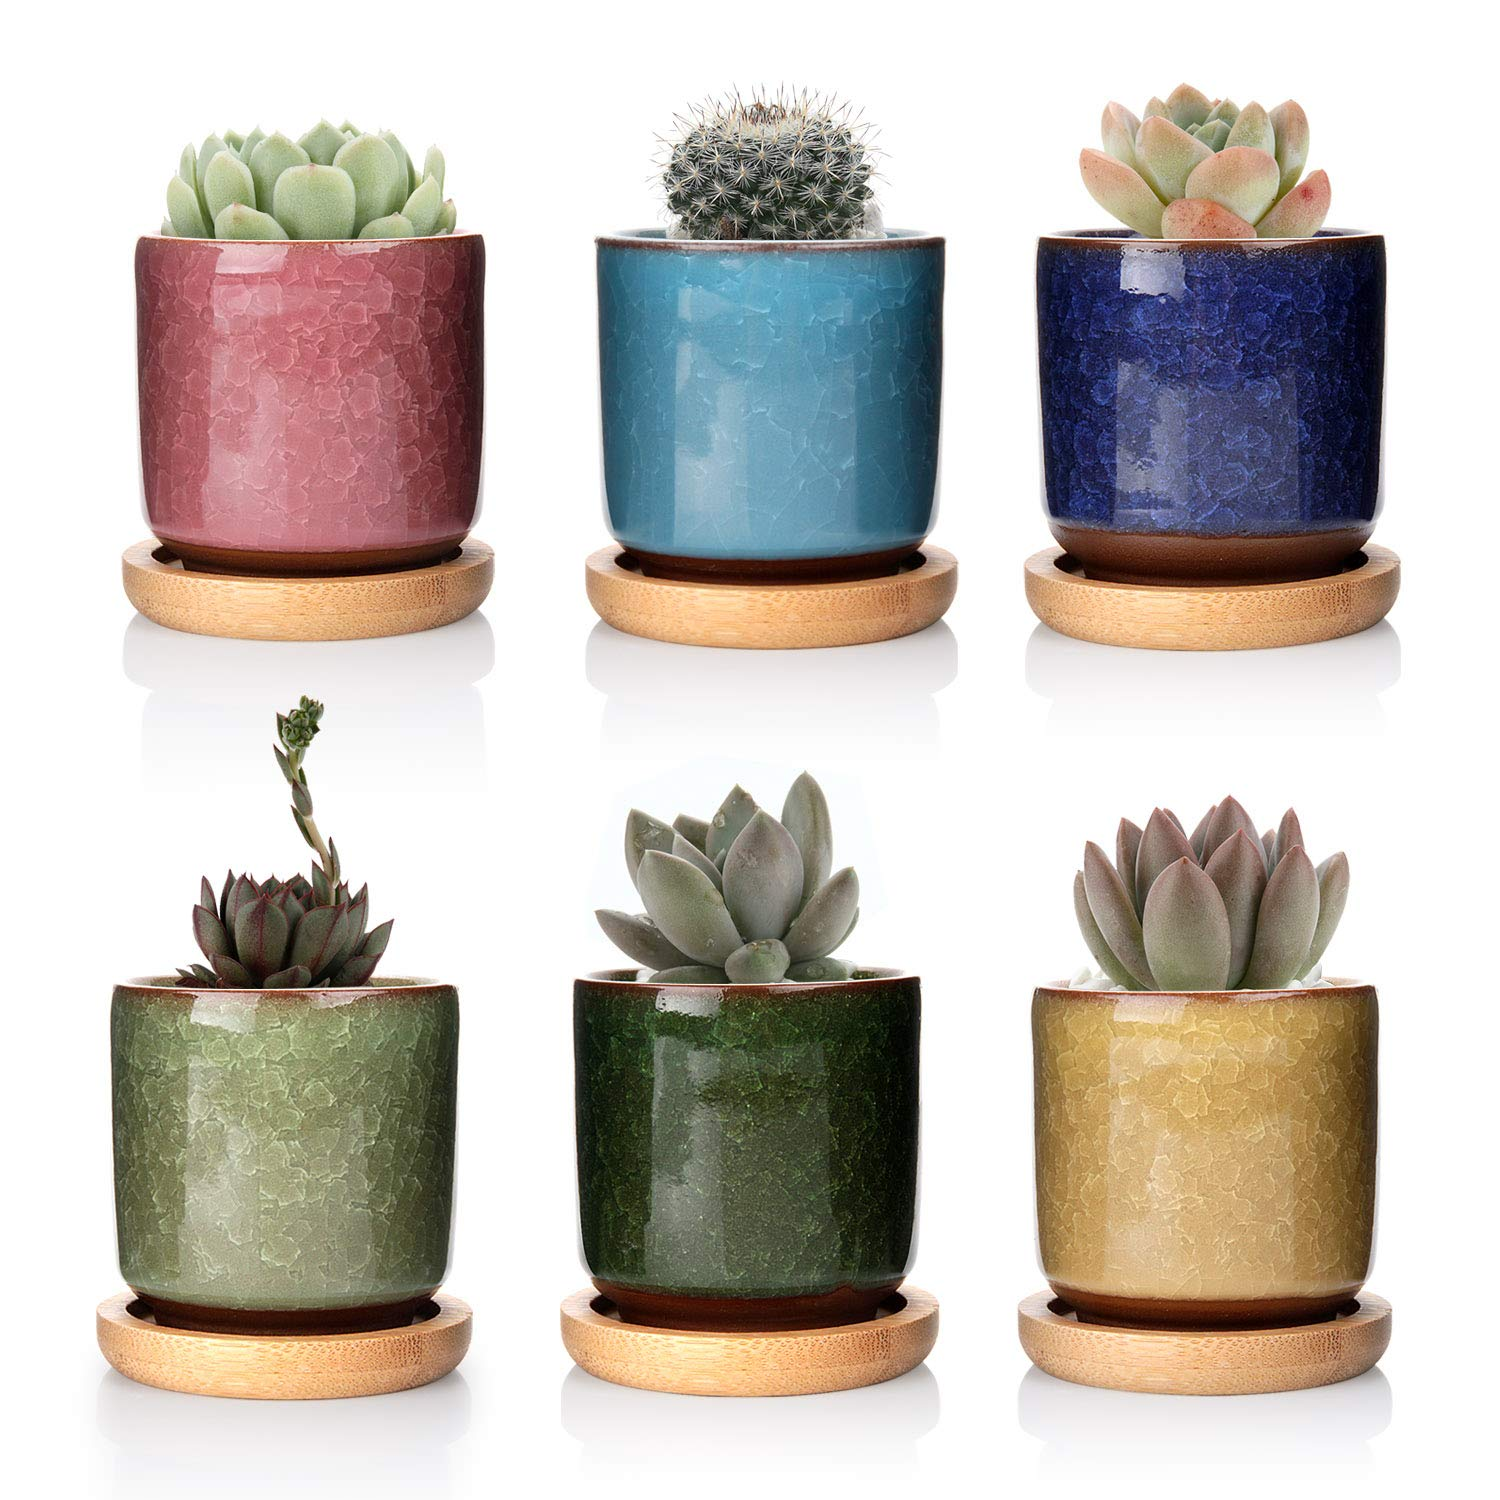 T4U 2.5 Inch Small Ceramic Succulent Planter Pot with Bamboo Saucer Set of 6, Ice Crack Glaze Porcelain Handicraft Plant Container Gift for Mom Sister Aunt Best for Home Office Desk Decoration